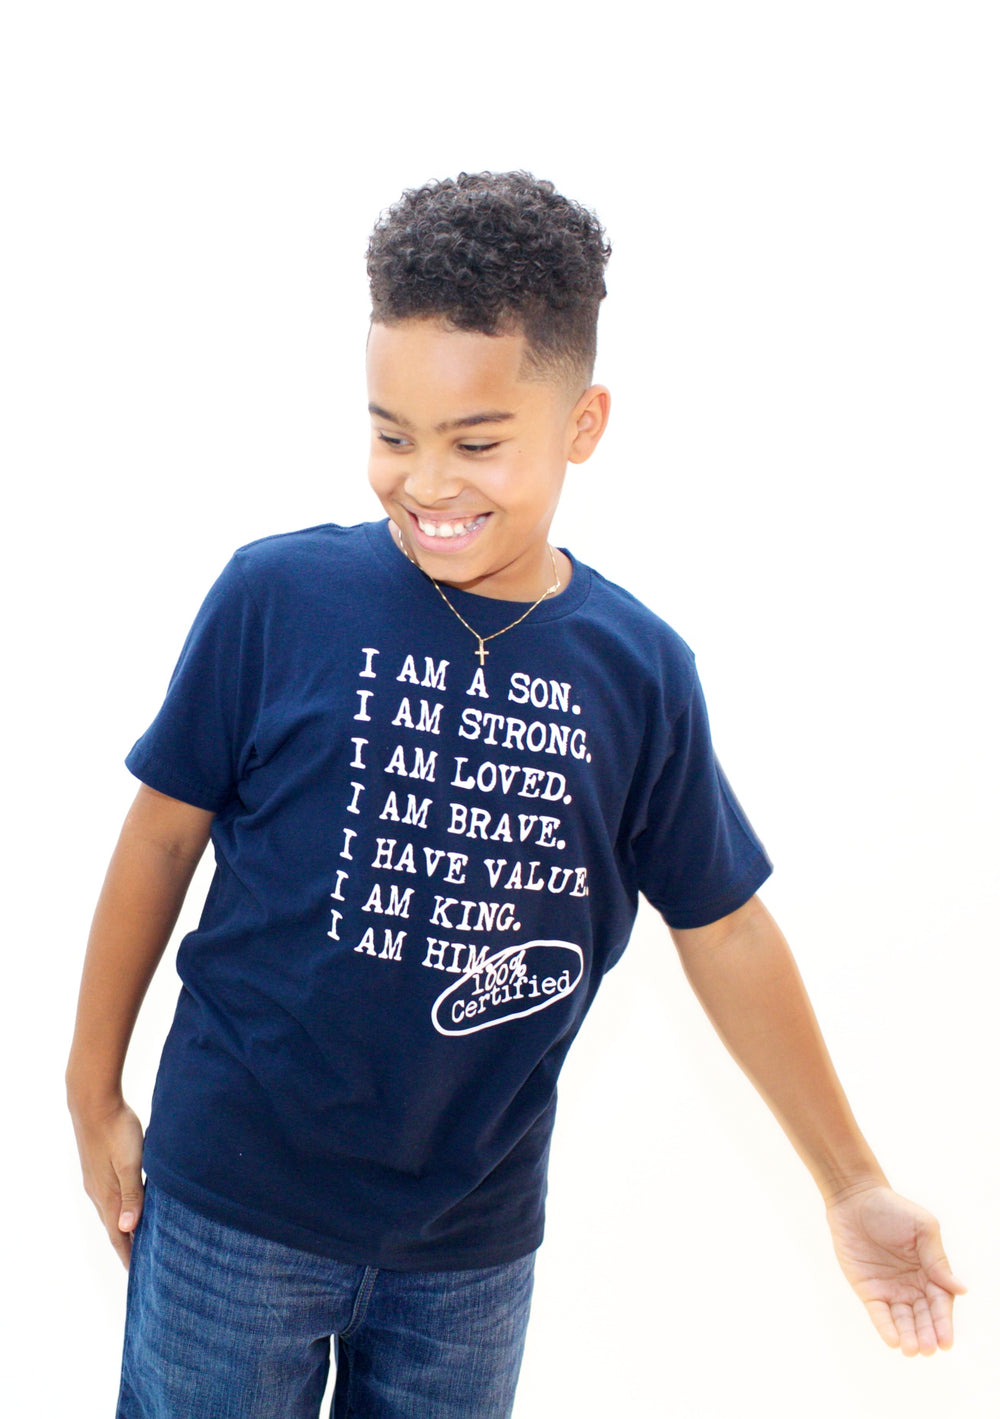 Boy wearing navy graphic tee for boys with saying, I AM A SON. I AM STRONG. I AM LOVED. I AM STRONG. I AM BRAVE. I AM VALUED. I AM KING. I AM HIM -­‐ 100% CERTIFIED. Boys clothing for him because it is never too early or too late for him to know his value and worth.